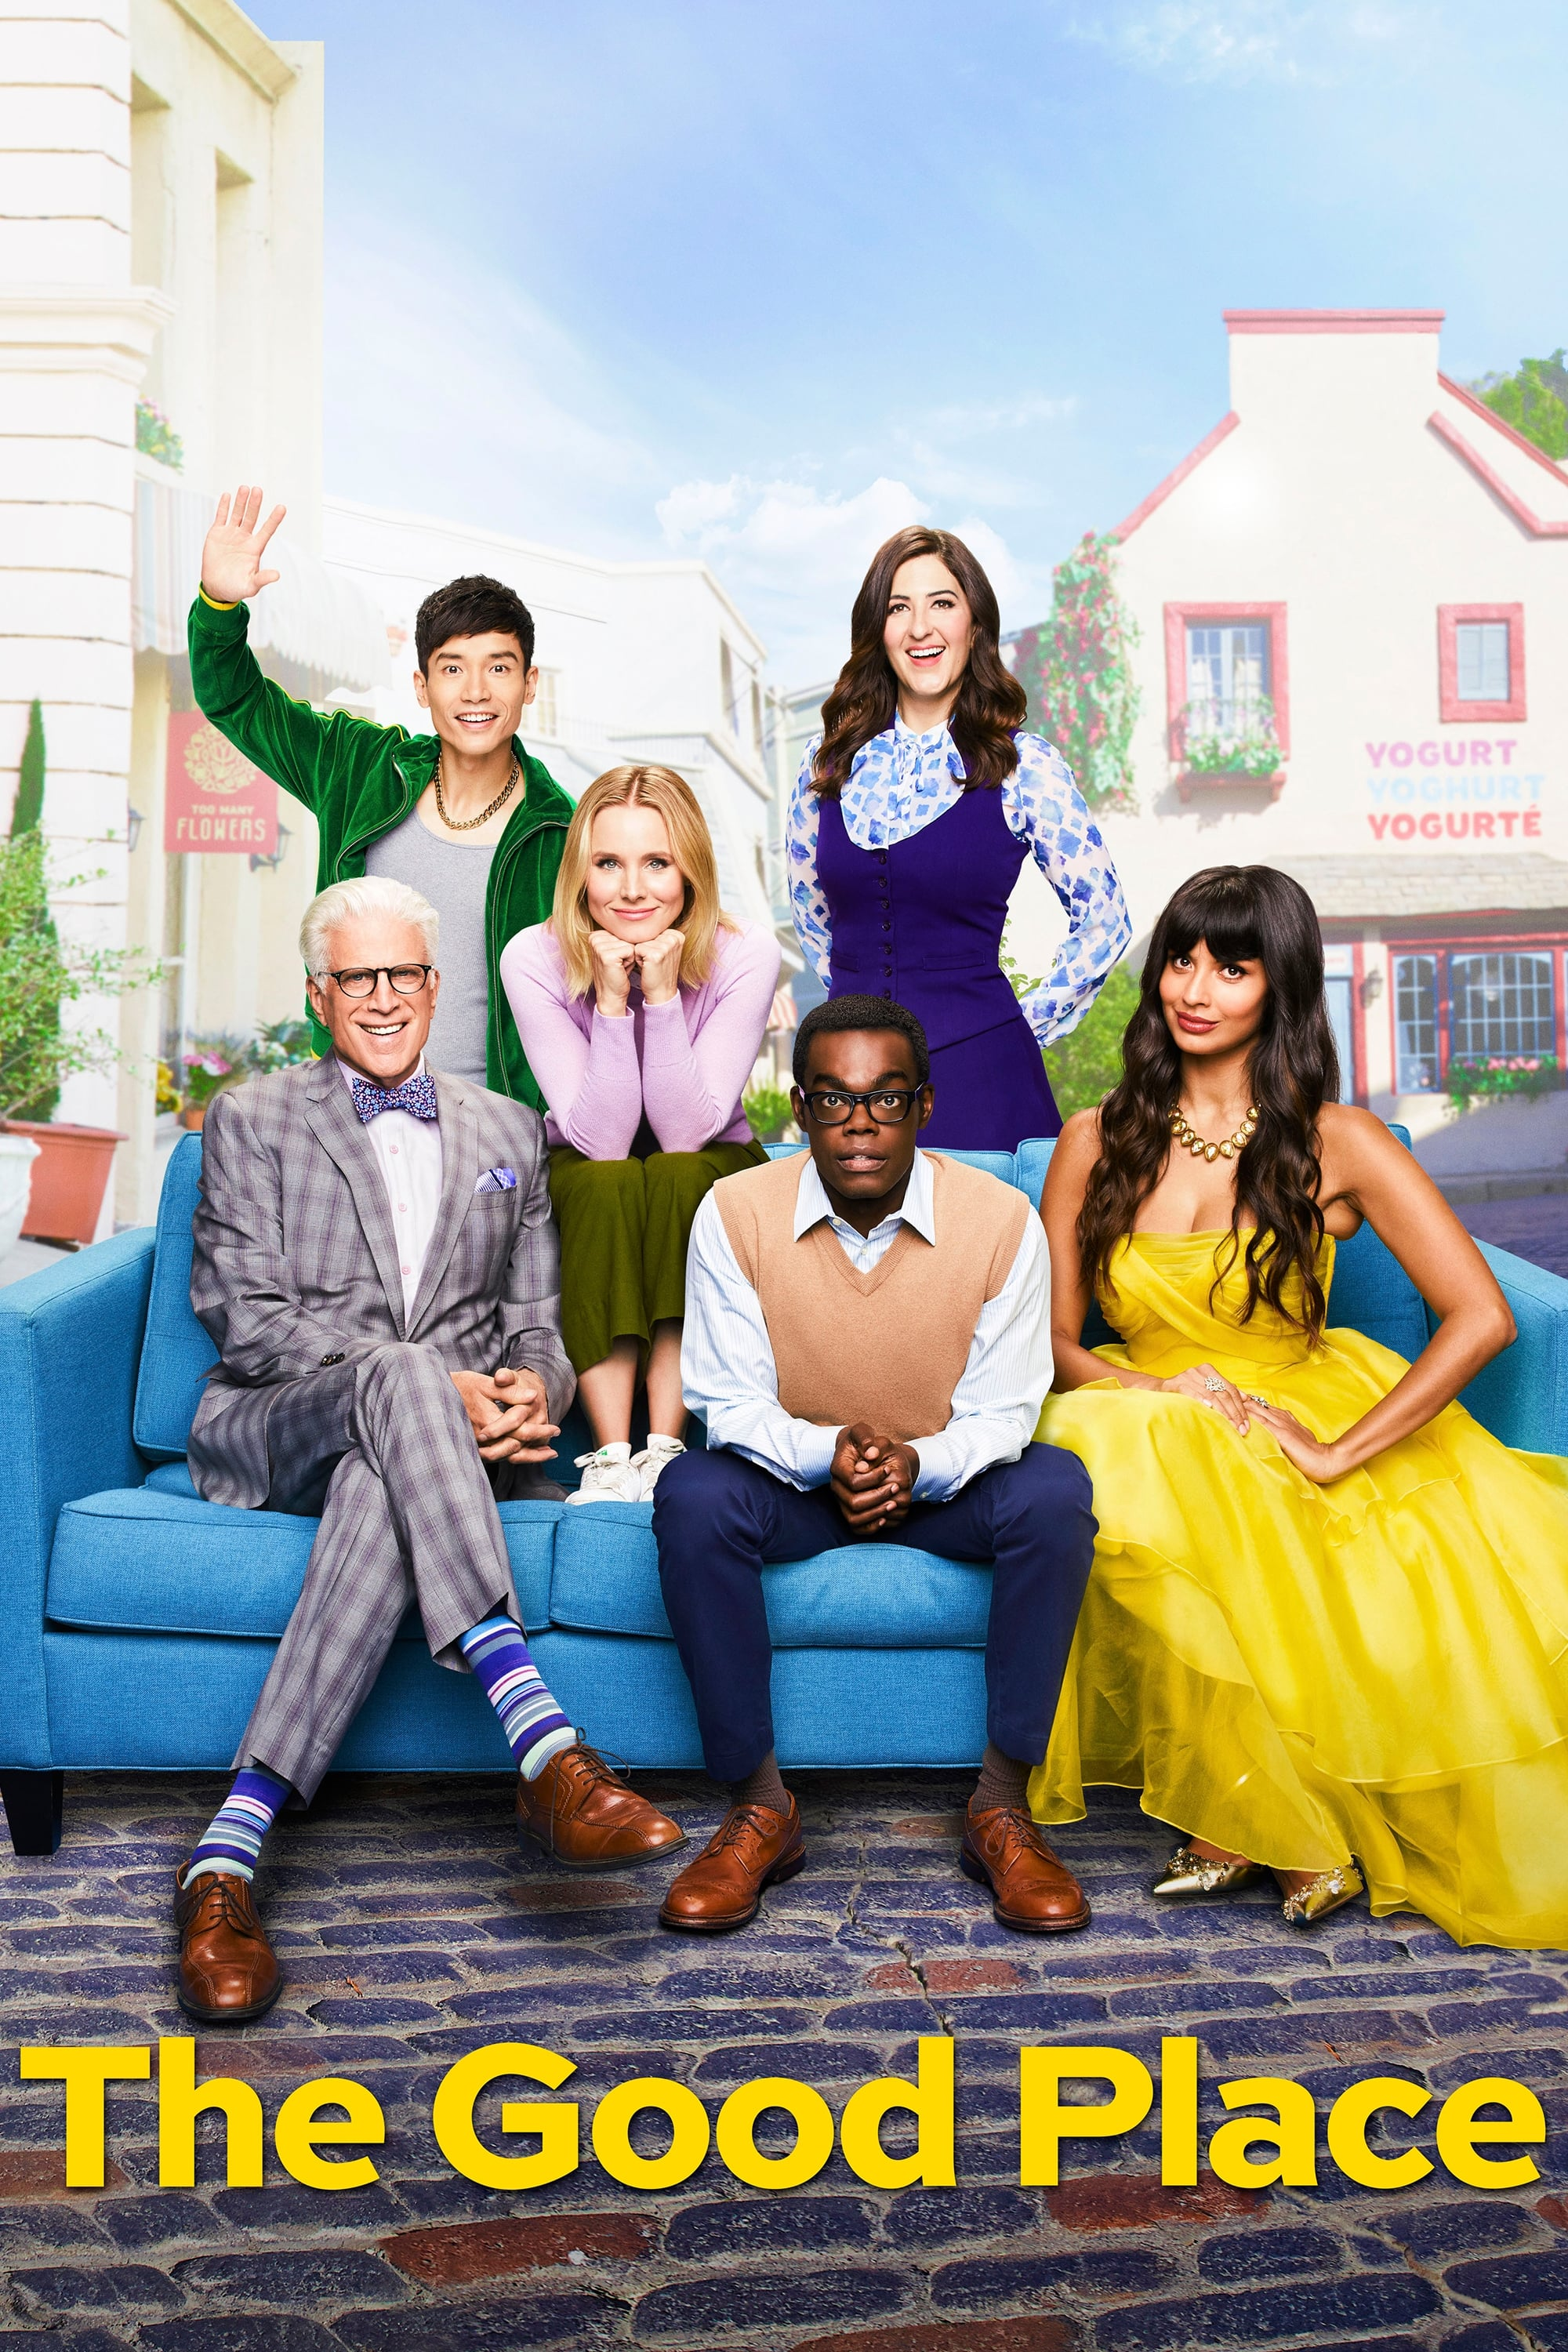 The Good Place' />